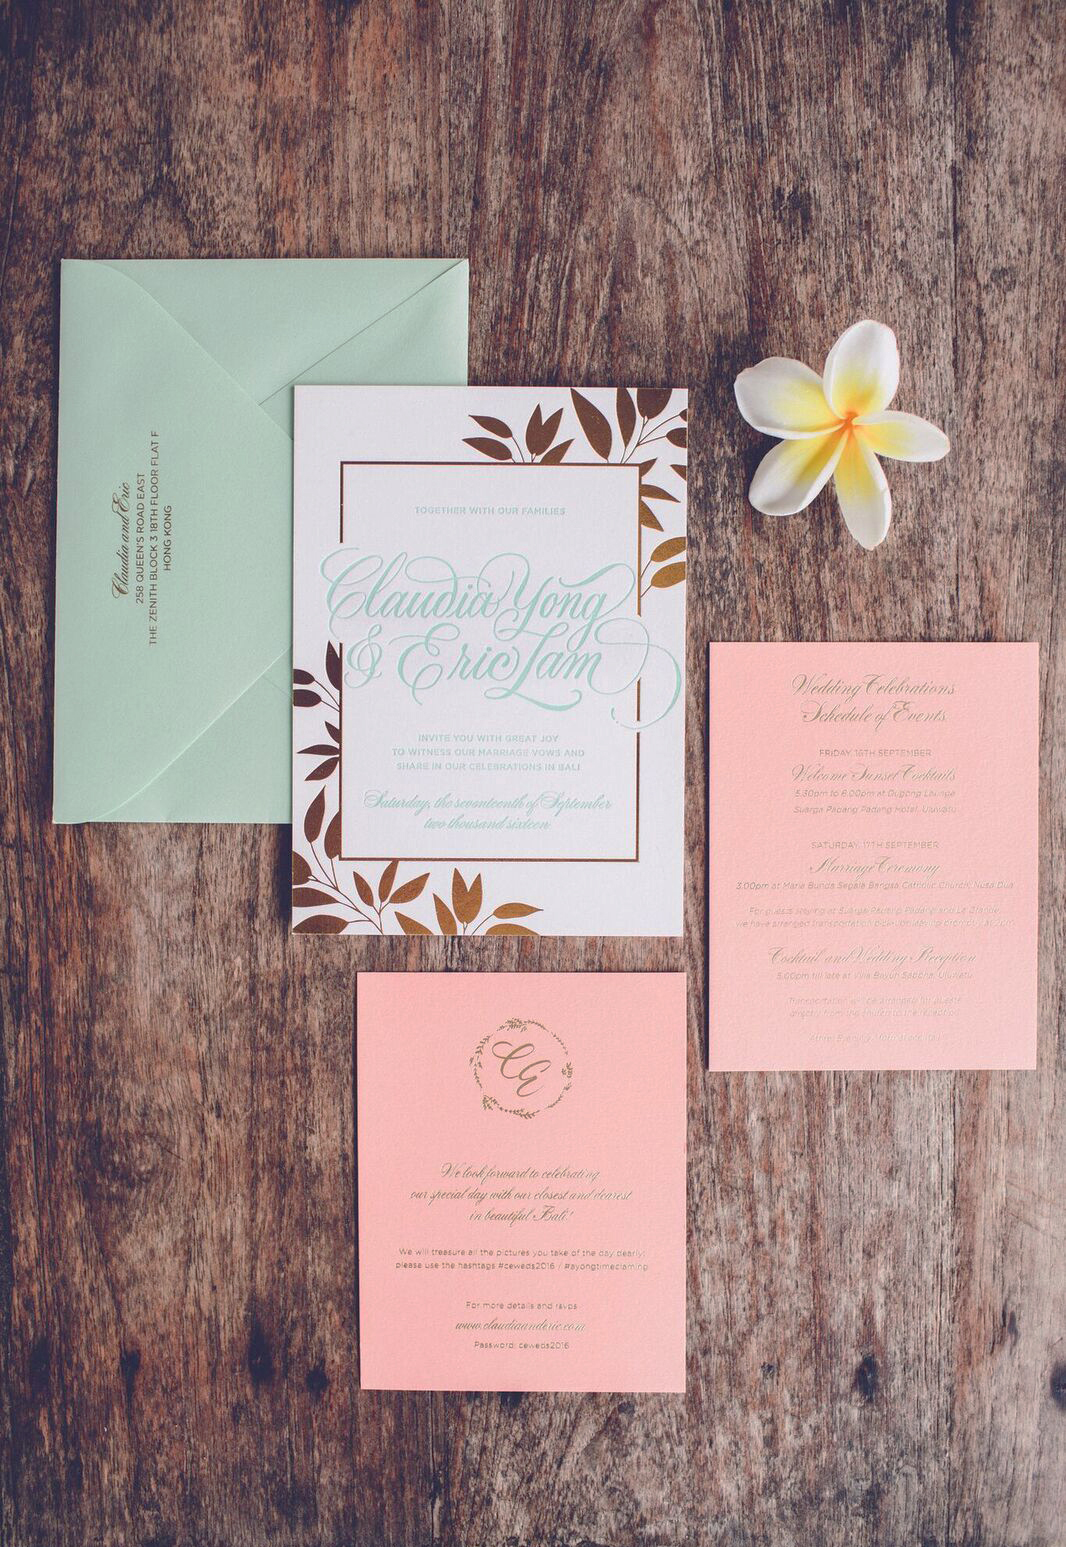 Letterpress and gold foil custom wedding invitations by Chavelli www.chavelli.com | Photography by  Chris Spira